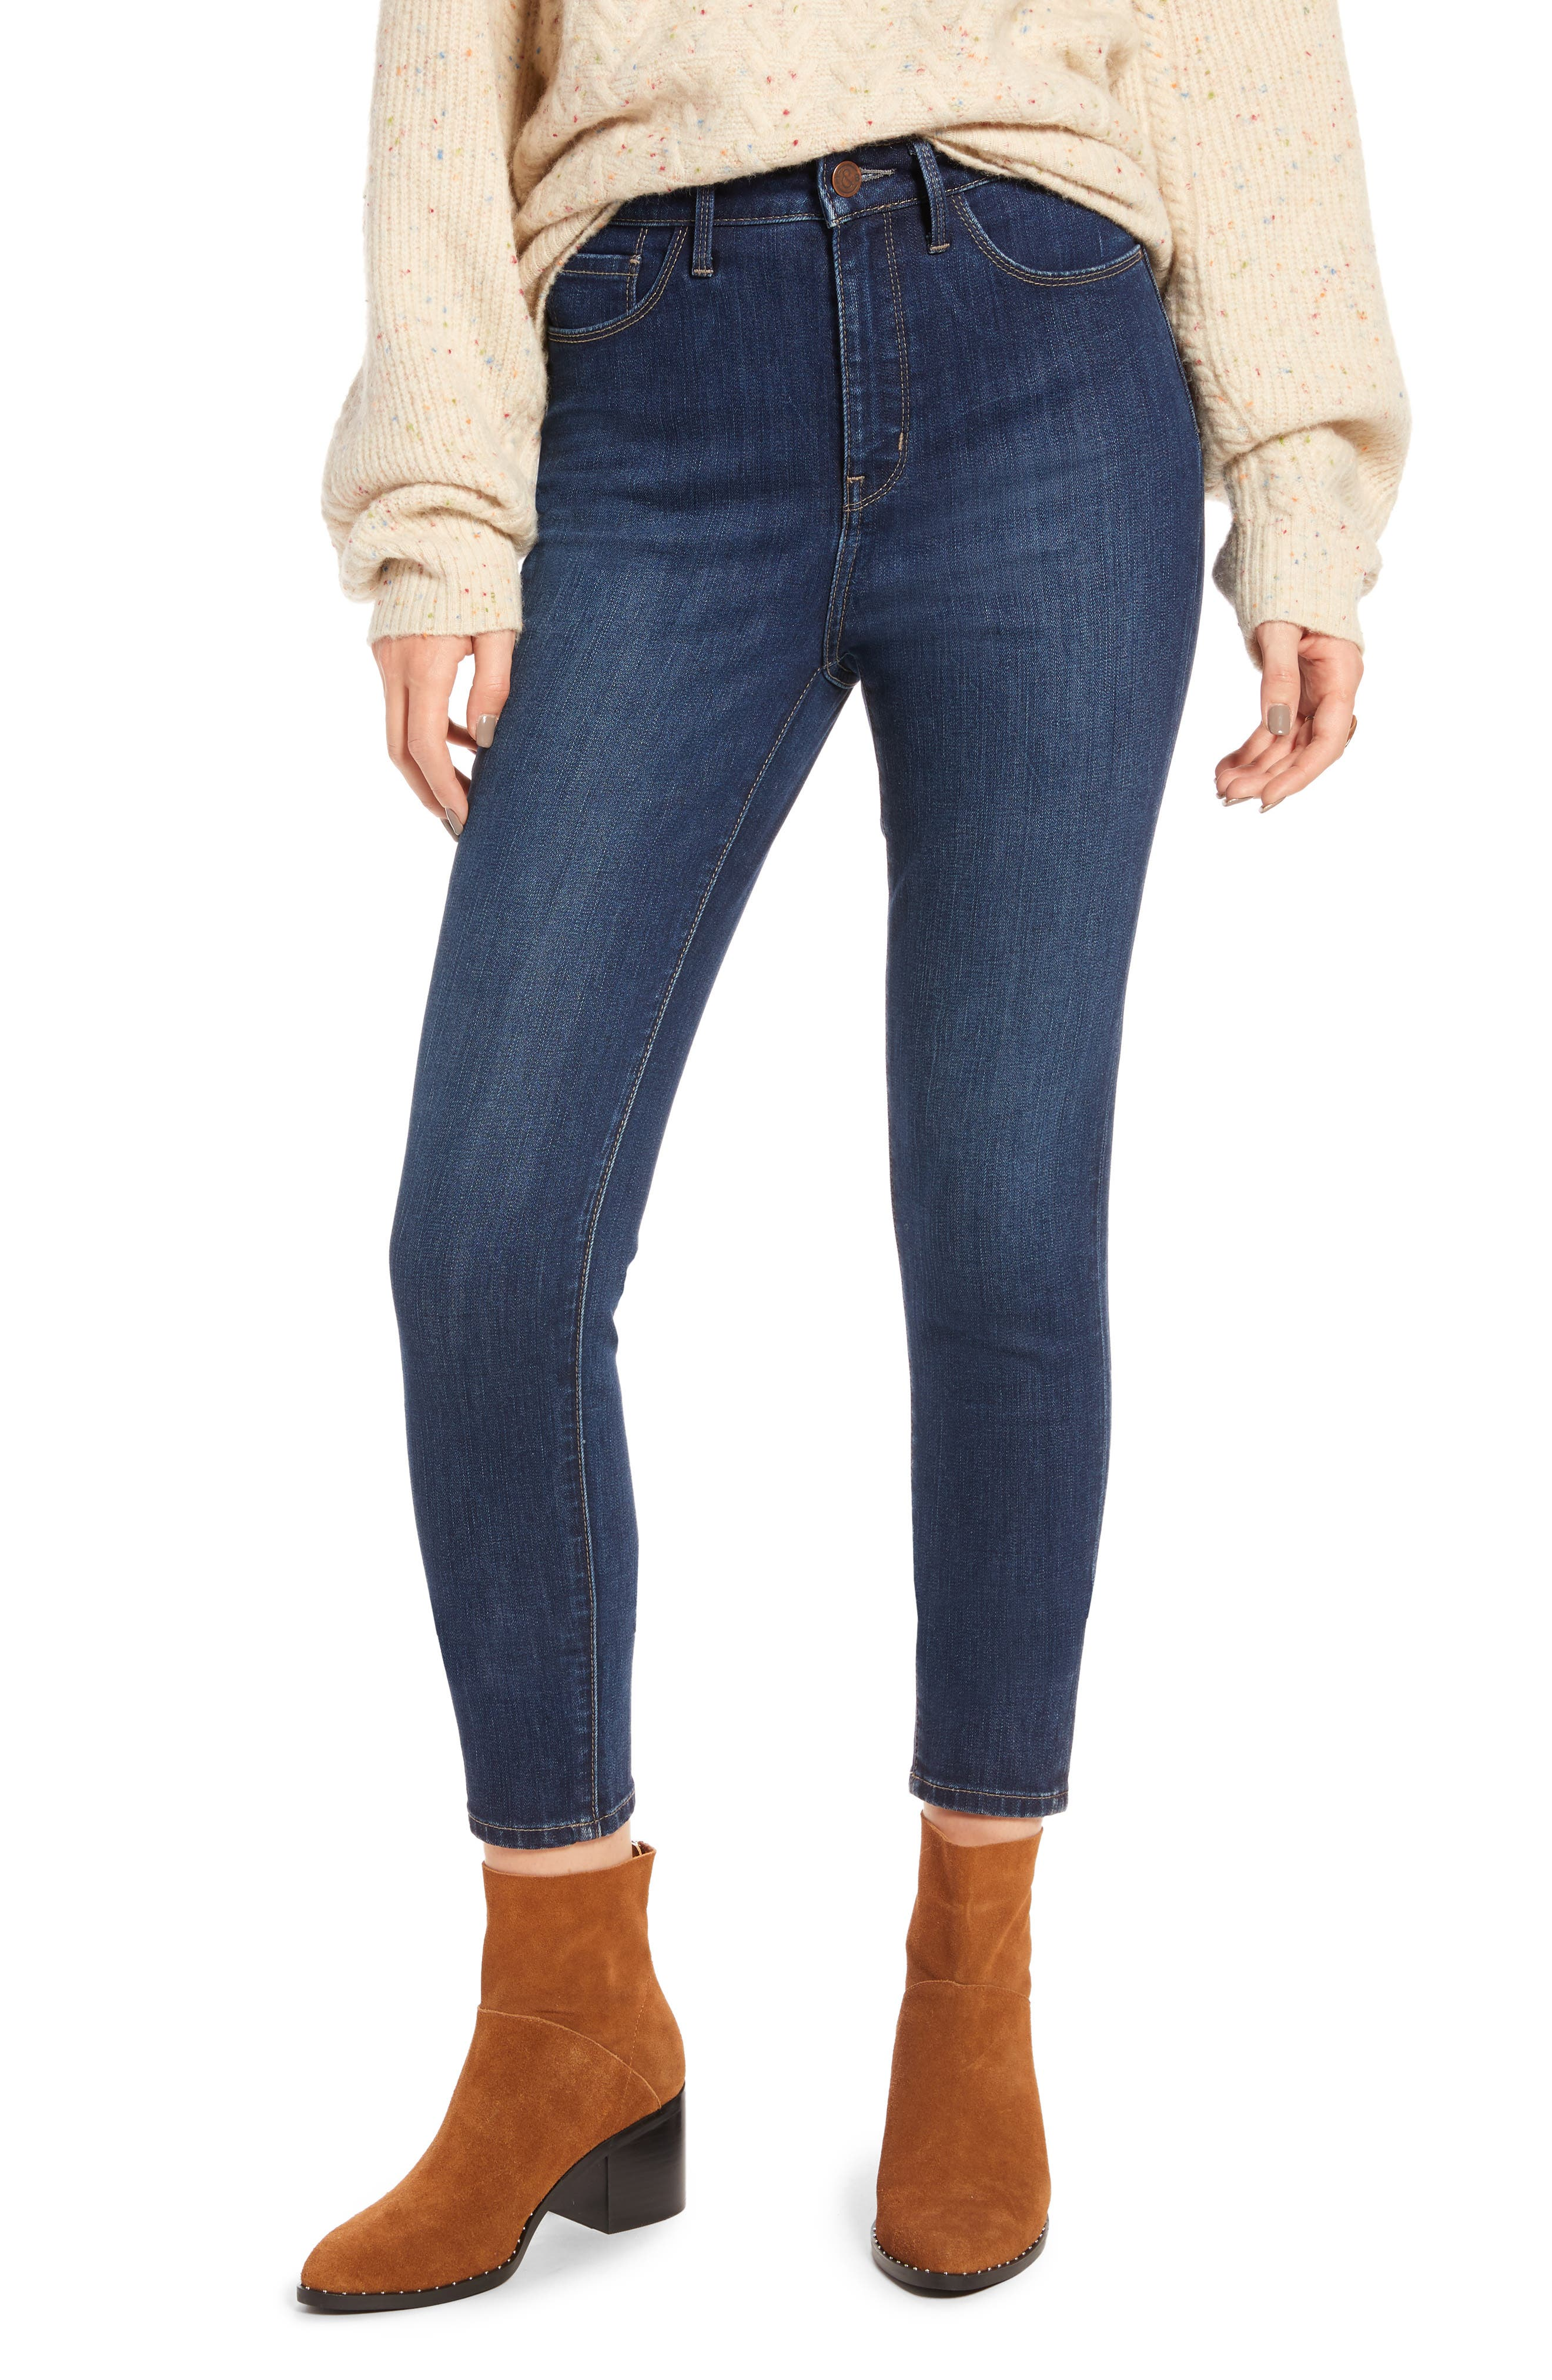 Charity High Waist Ankle Skinny Jeans,                         Main,                         color, 401